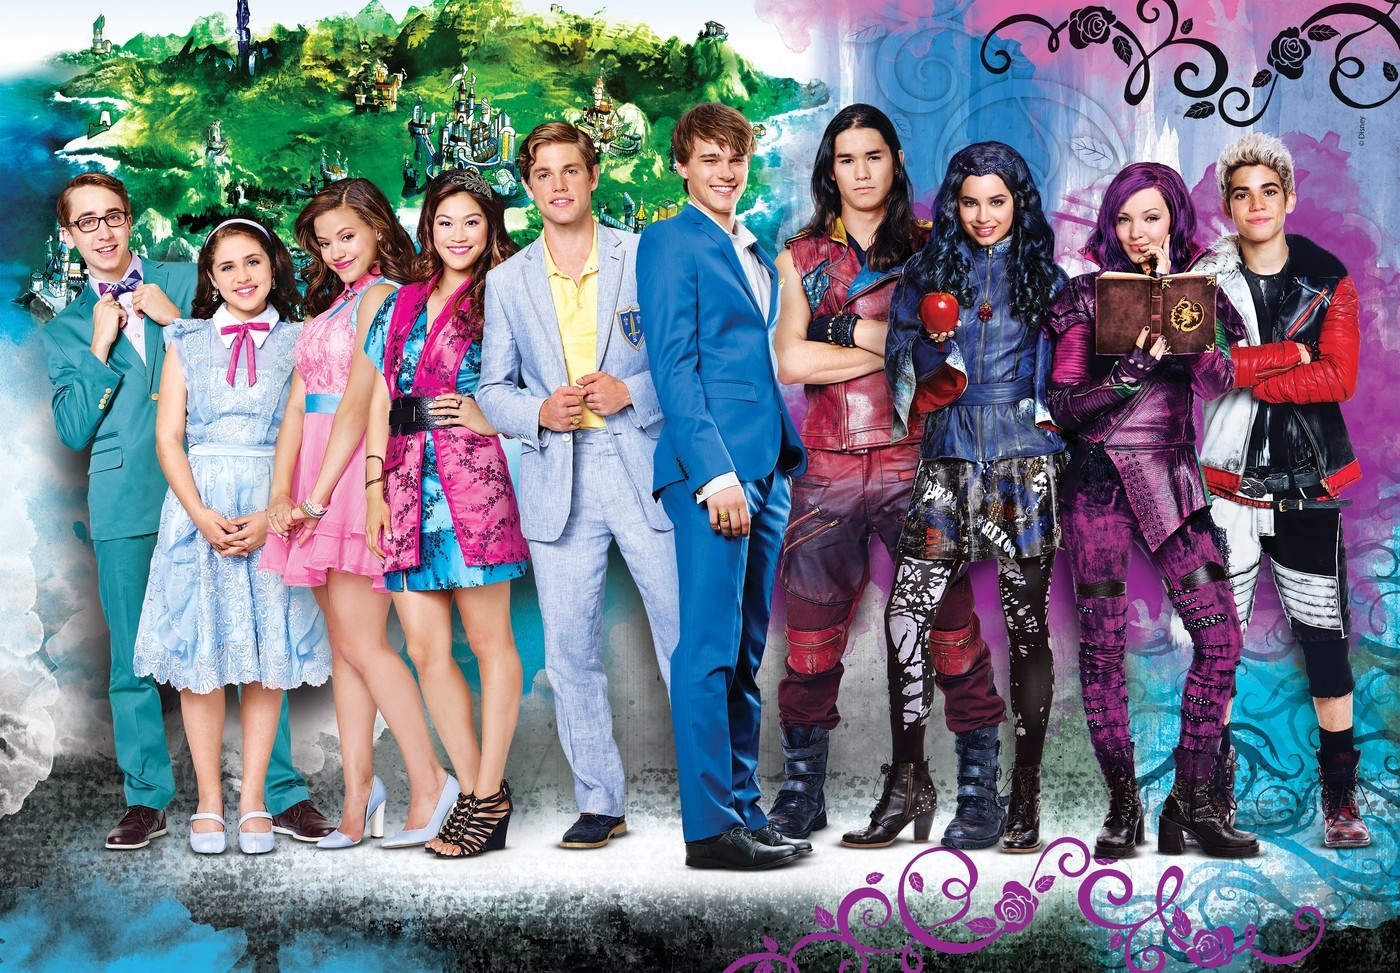 Descendants - Site De Film-Dados ! avec Descendants Personnages